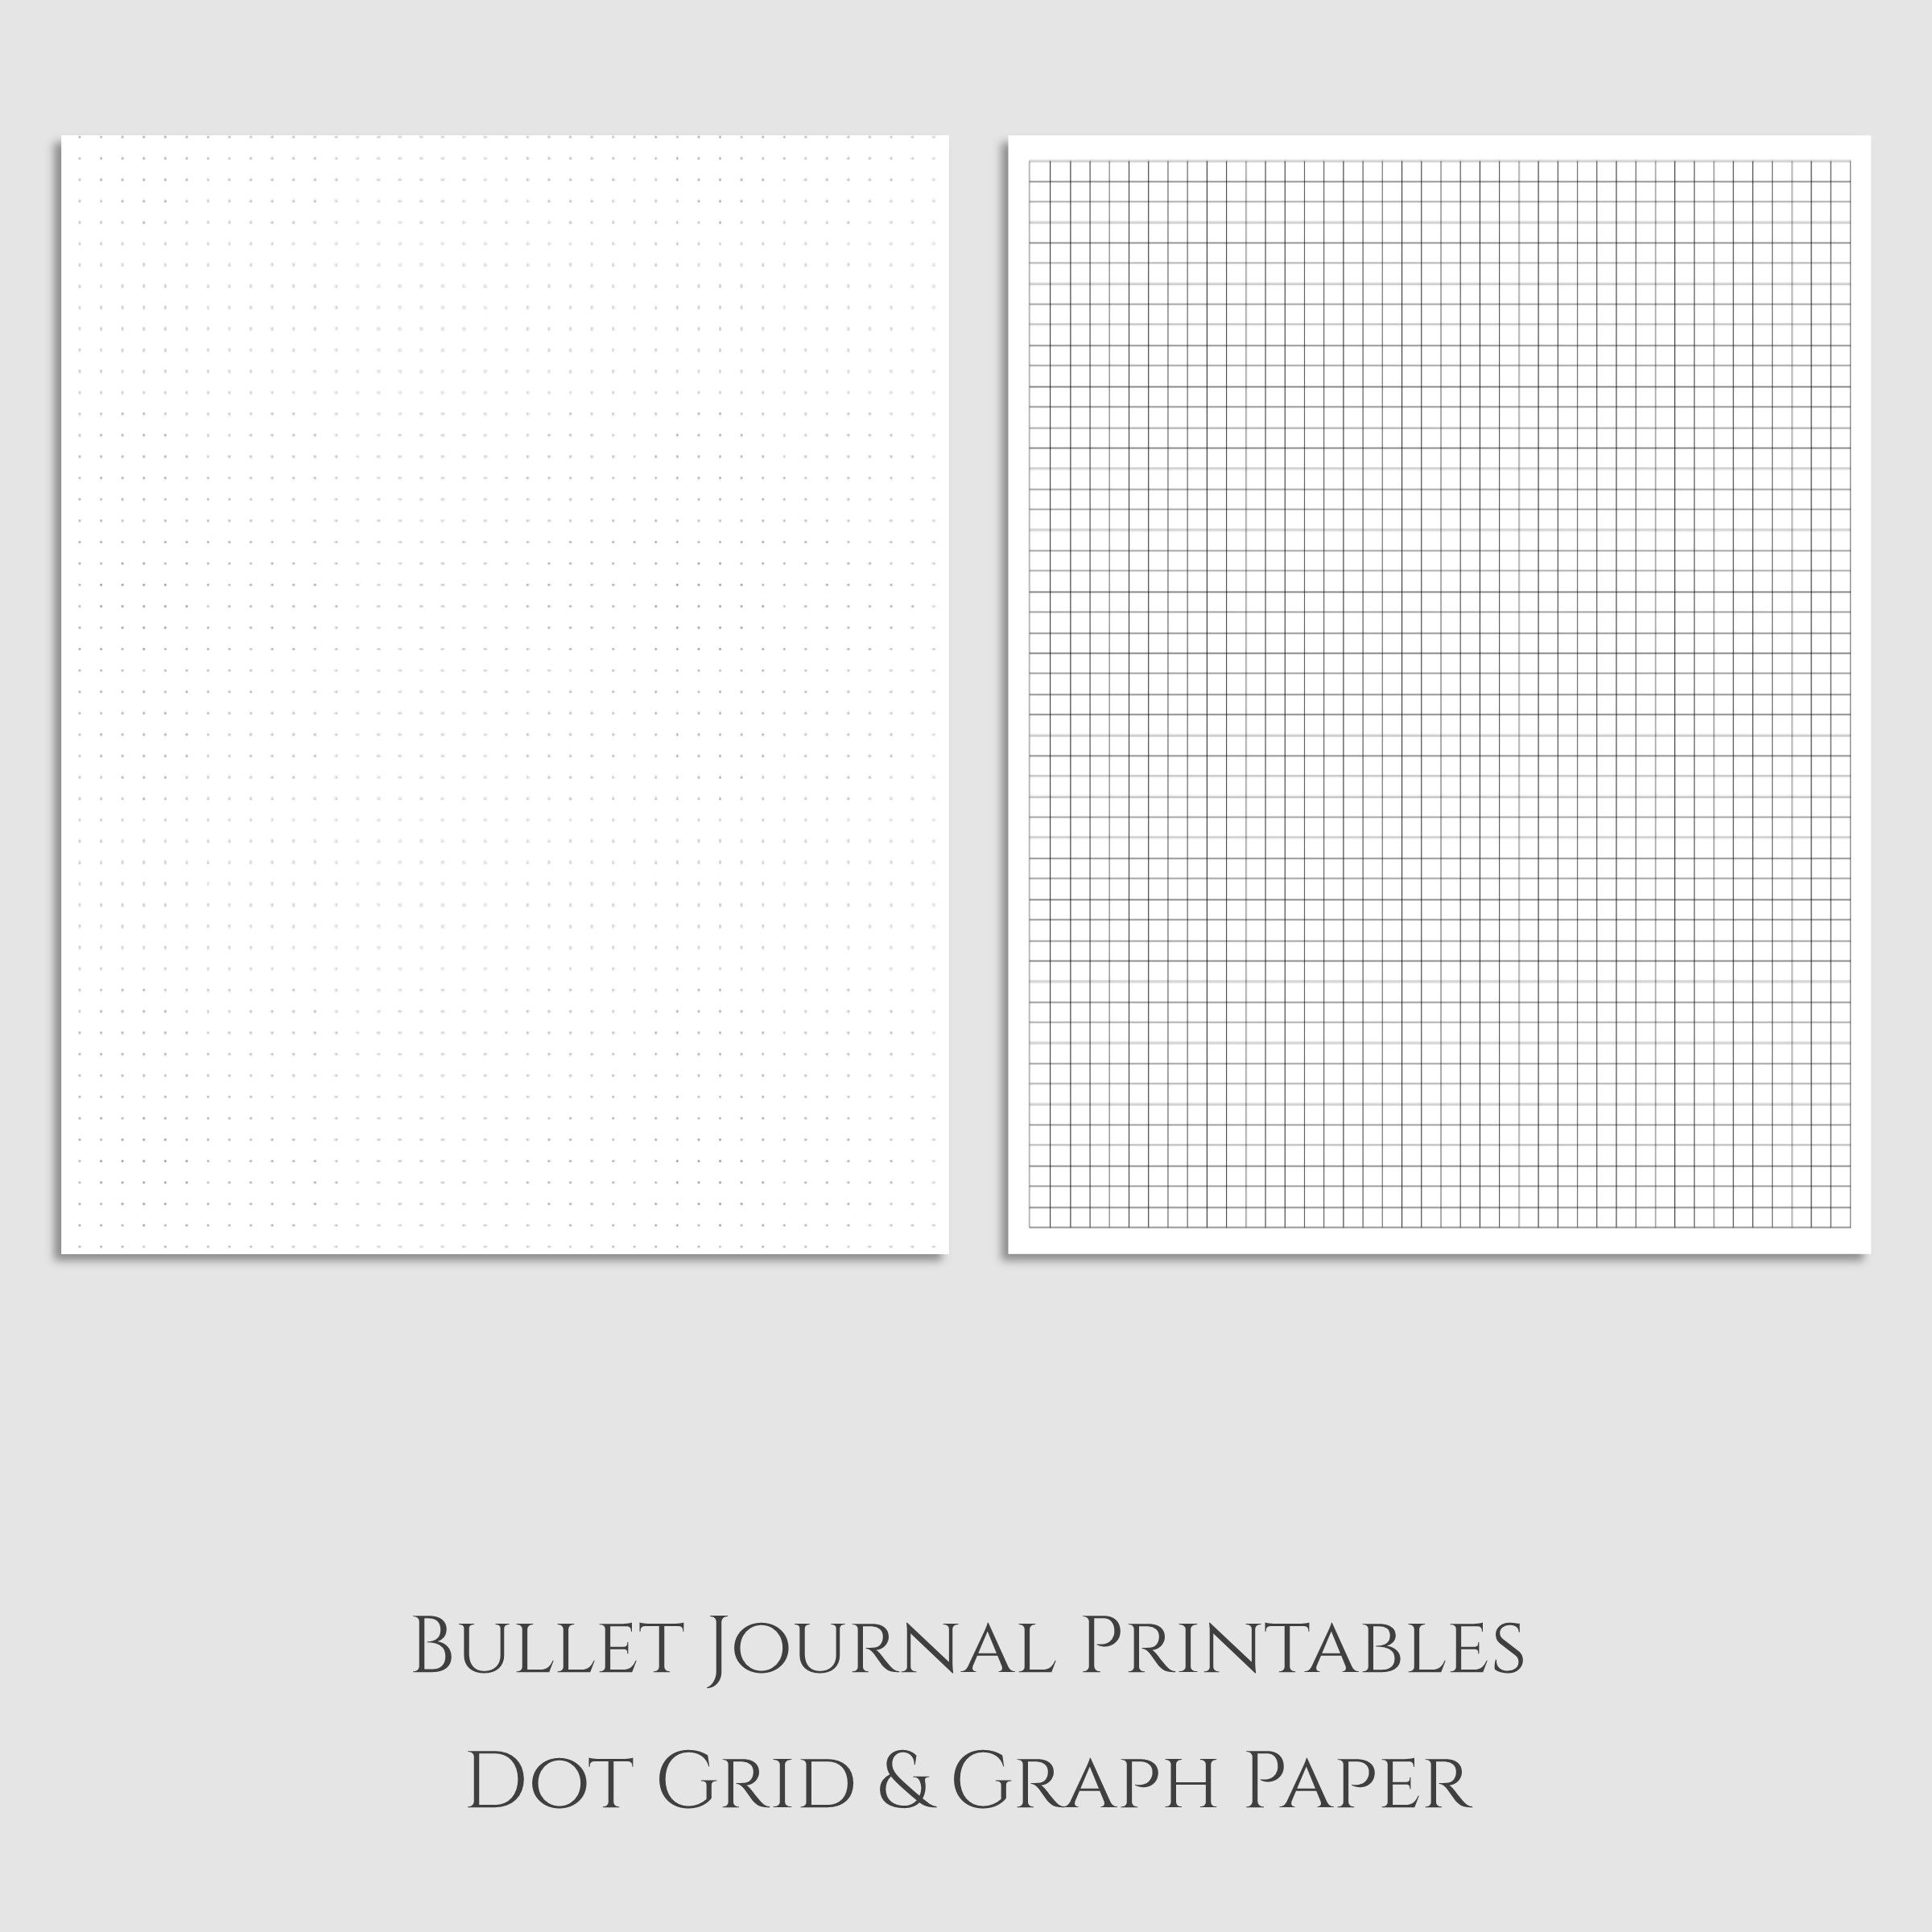 worksheet Graph Paper Print Out love the versatility of dot grid paper and graph want to bullet journal printables sarcasm sweet tea